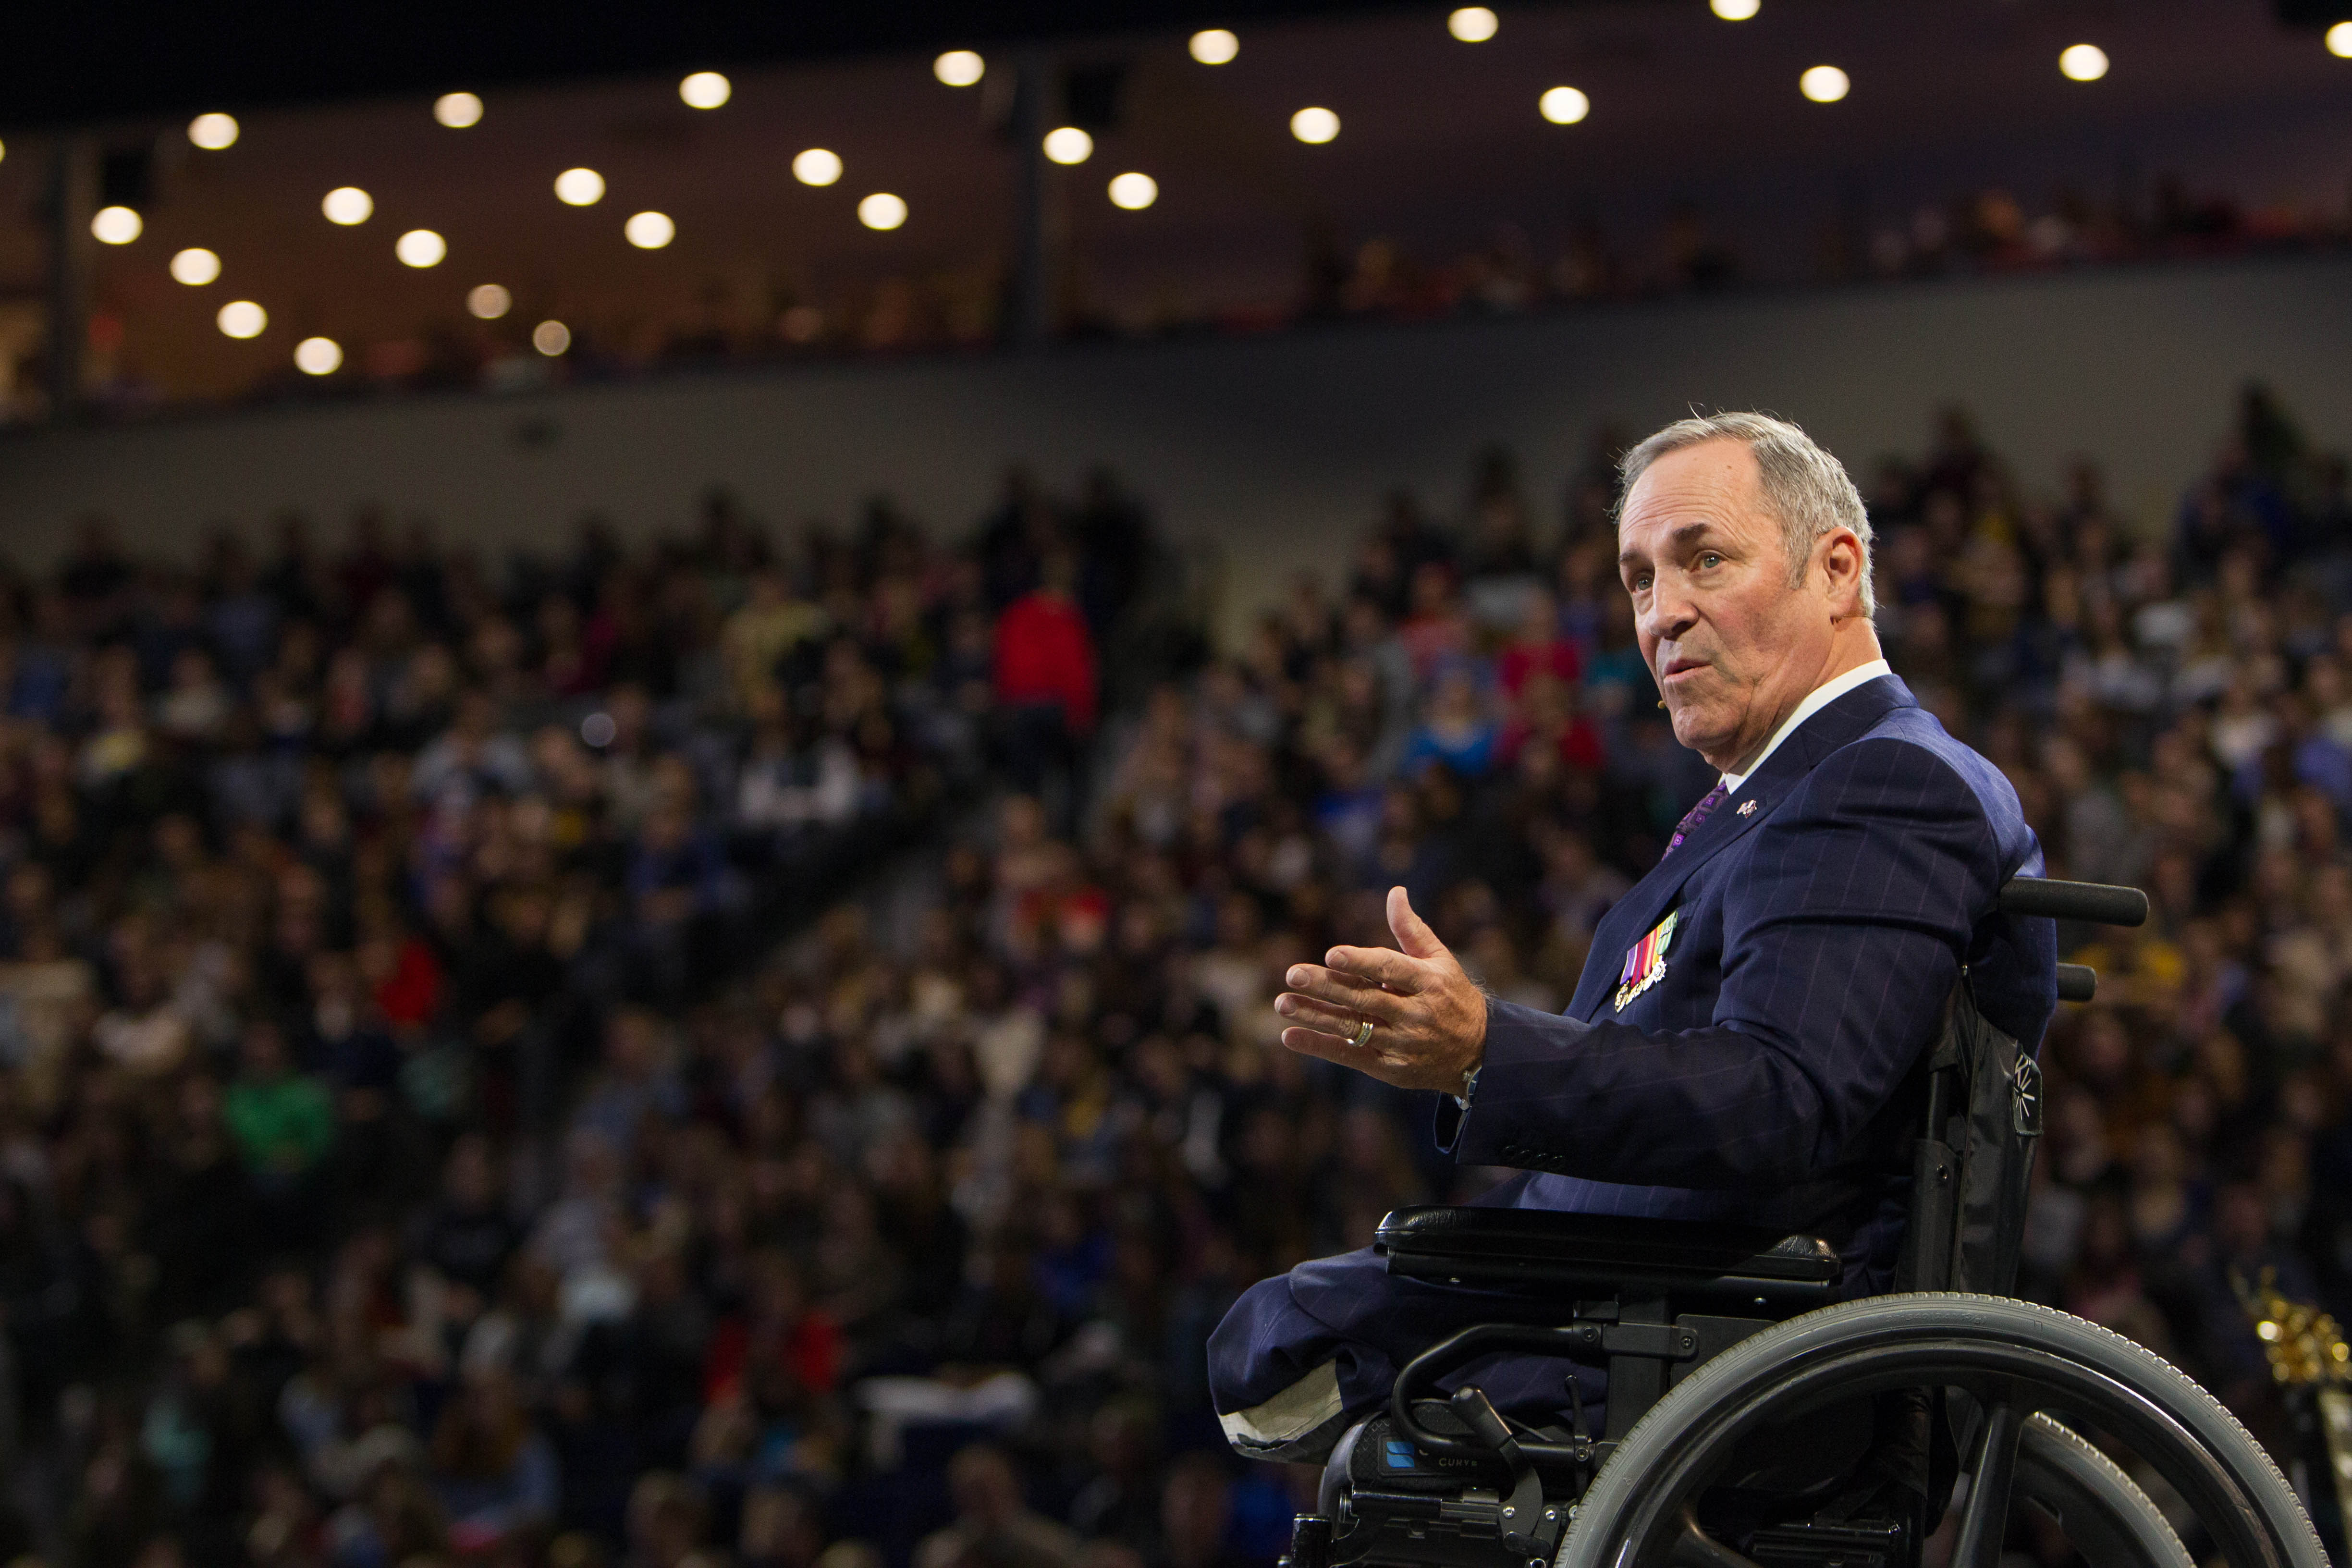 War veteran and evangelist Tim Lee addresses more than 10,000 Liberty students at Convocation on January 23, 2015. Photo credit: Kevin Mangioub